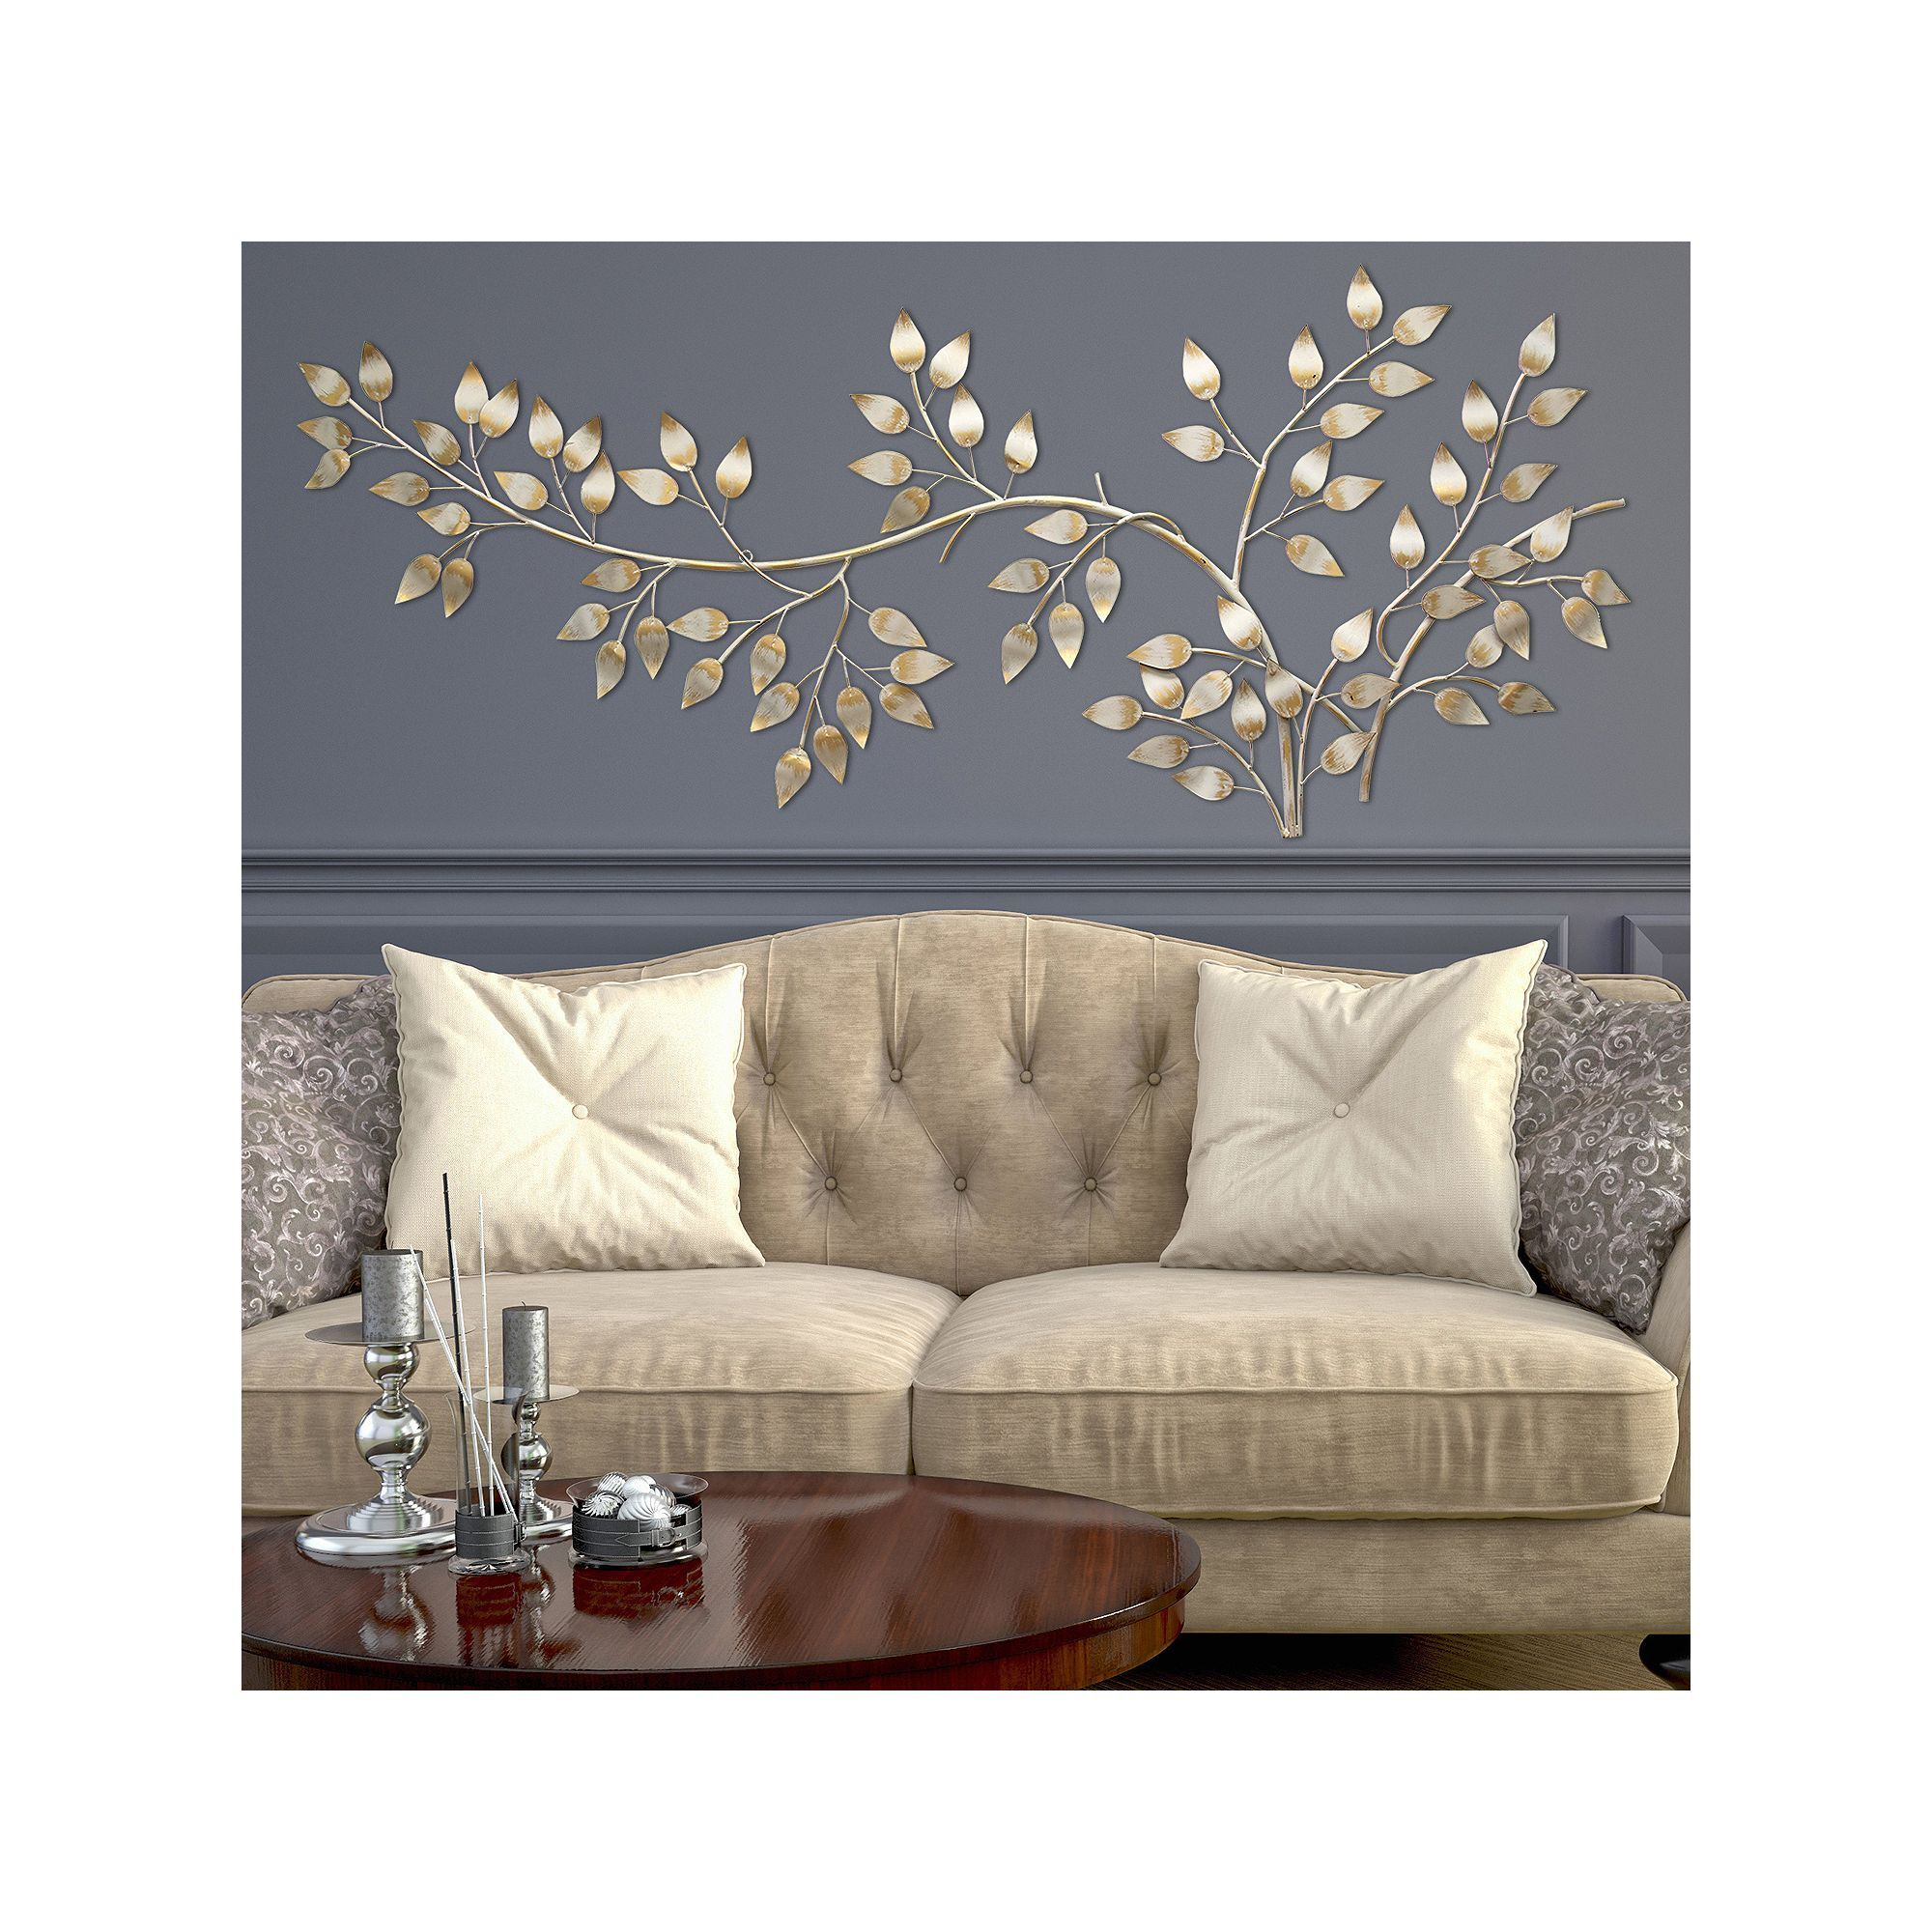 Flowing Leaves Wall Decor With Regard To 2020 Stratton Home Decor Flowing Leaves Metal Wall Decor In (View 4 of 20)